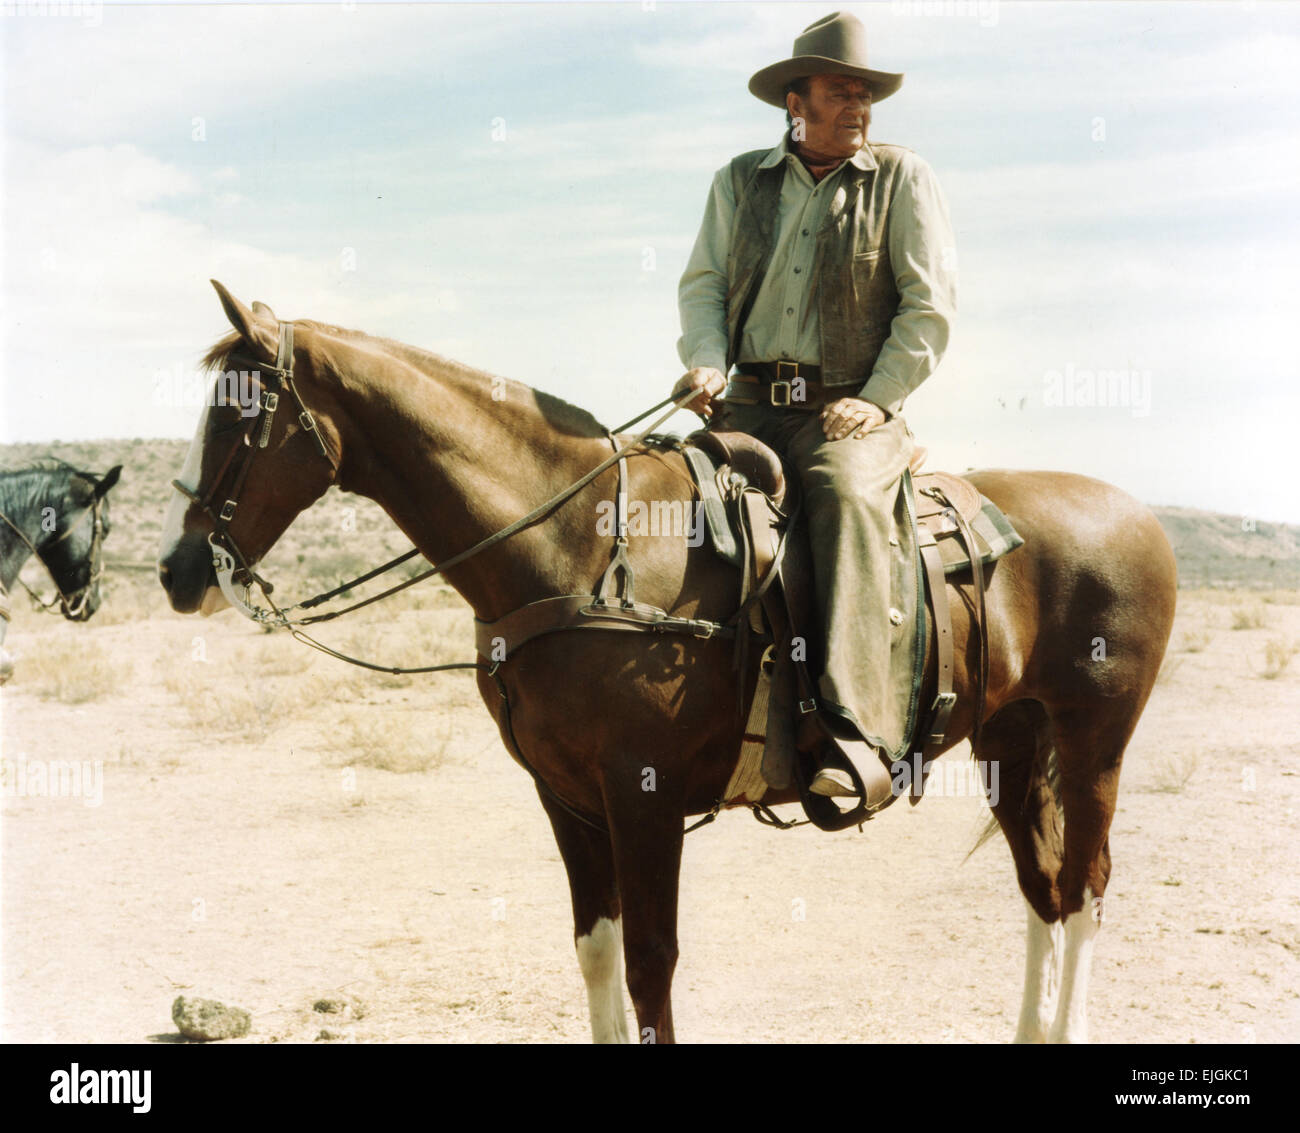 JOHN WAYNE (1907-1979) US film actor famous for his roles in Western films - Stock Image